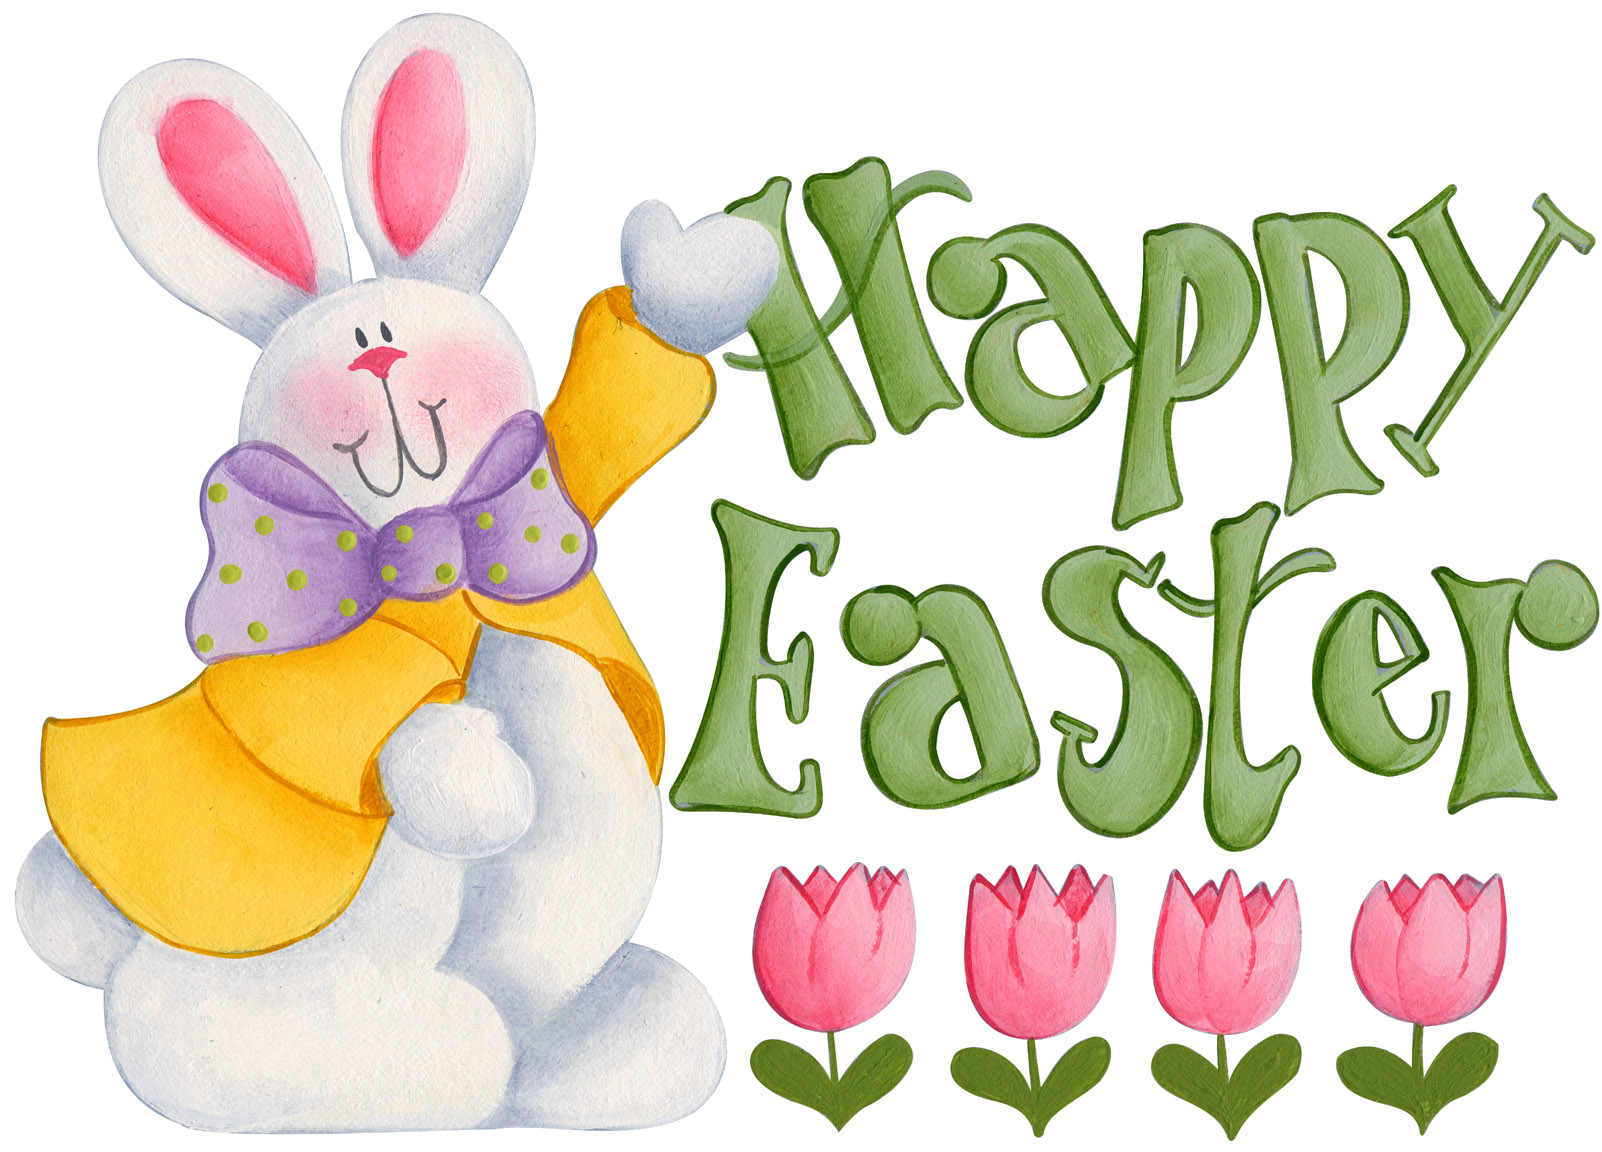 Celebrate clipart easter. Good friday debate does